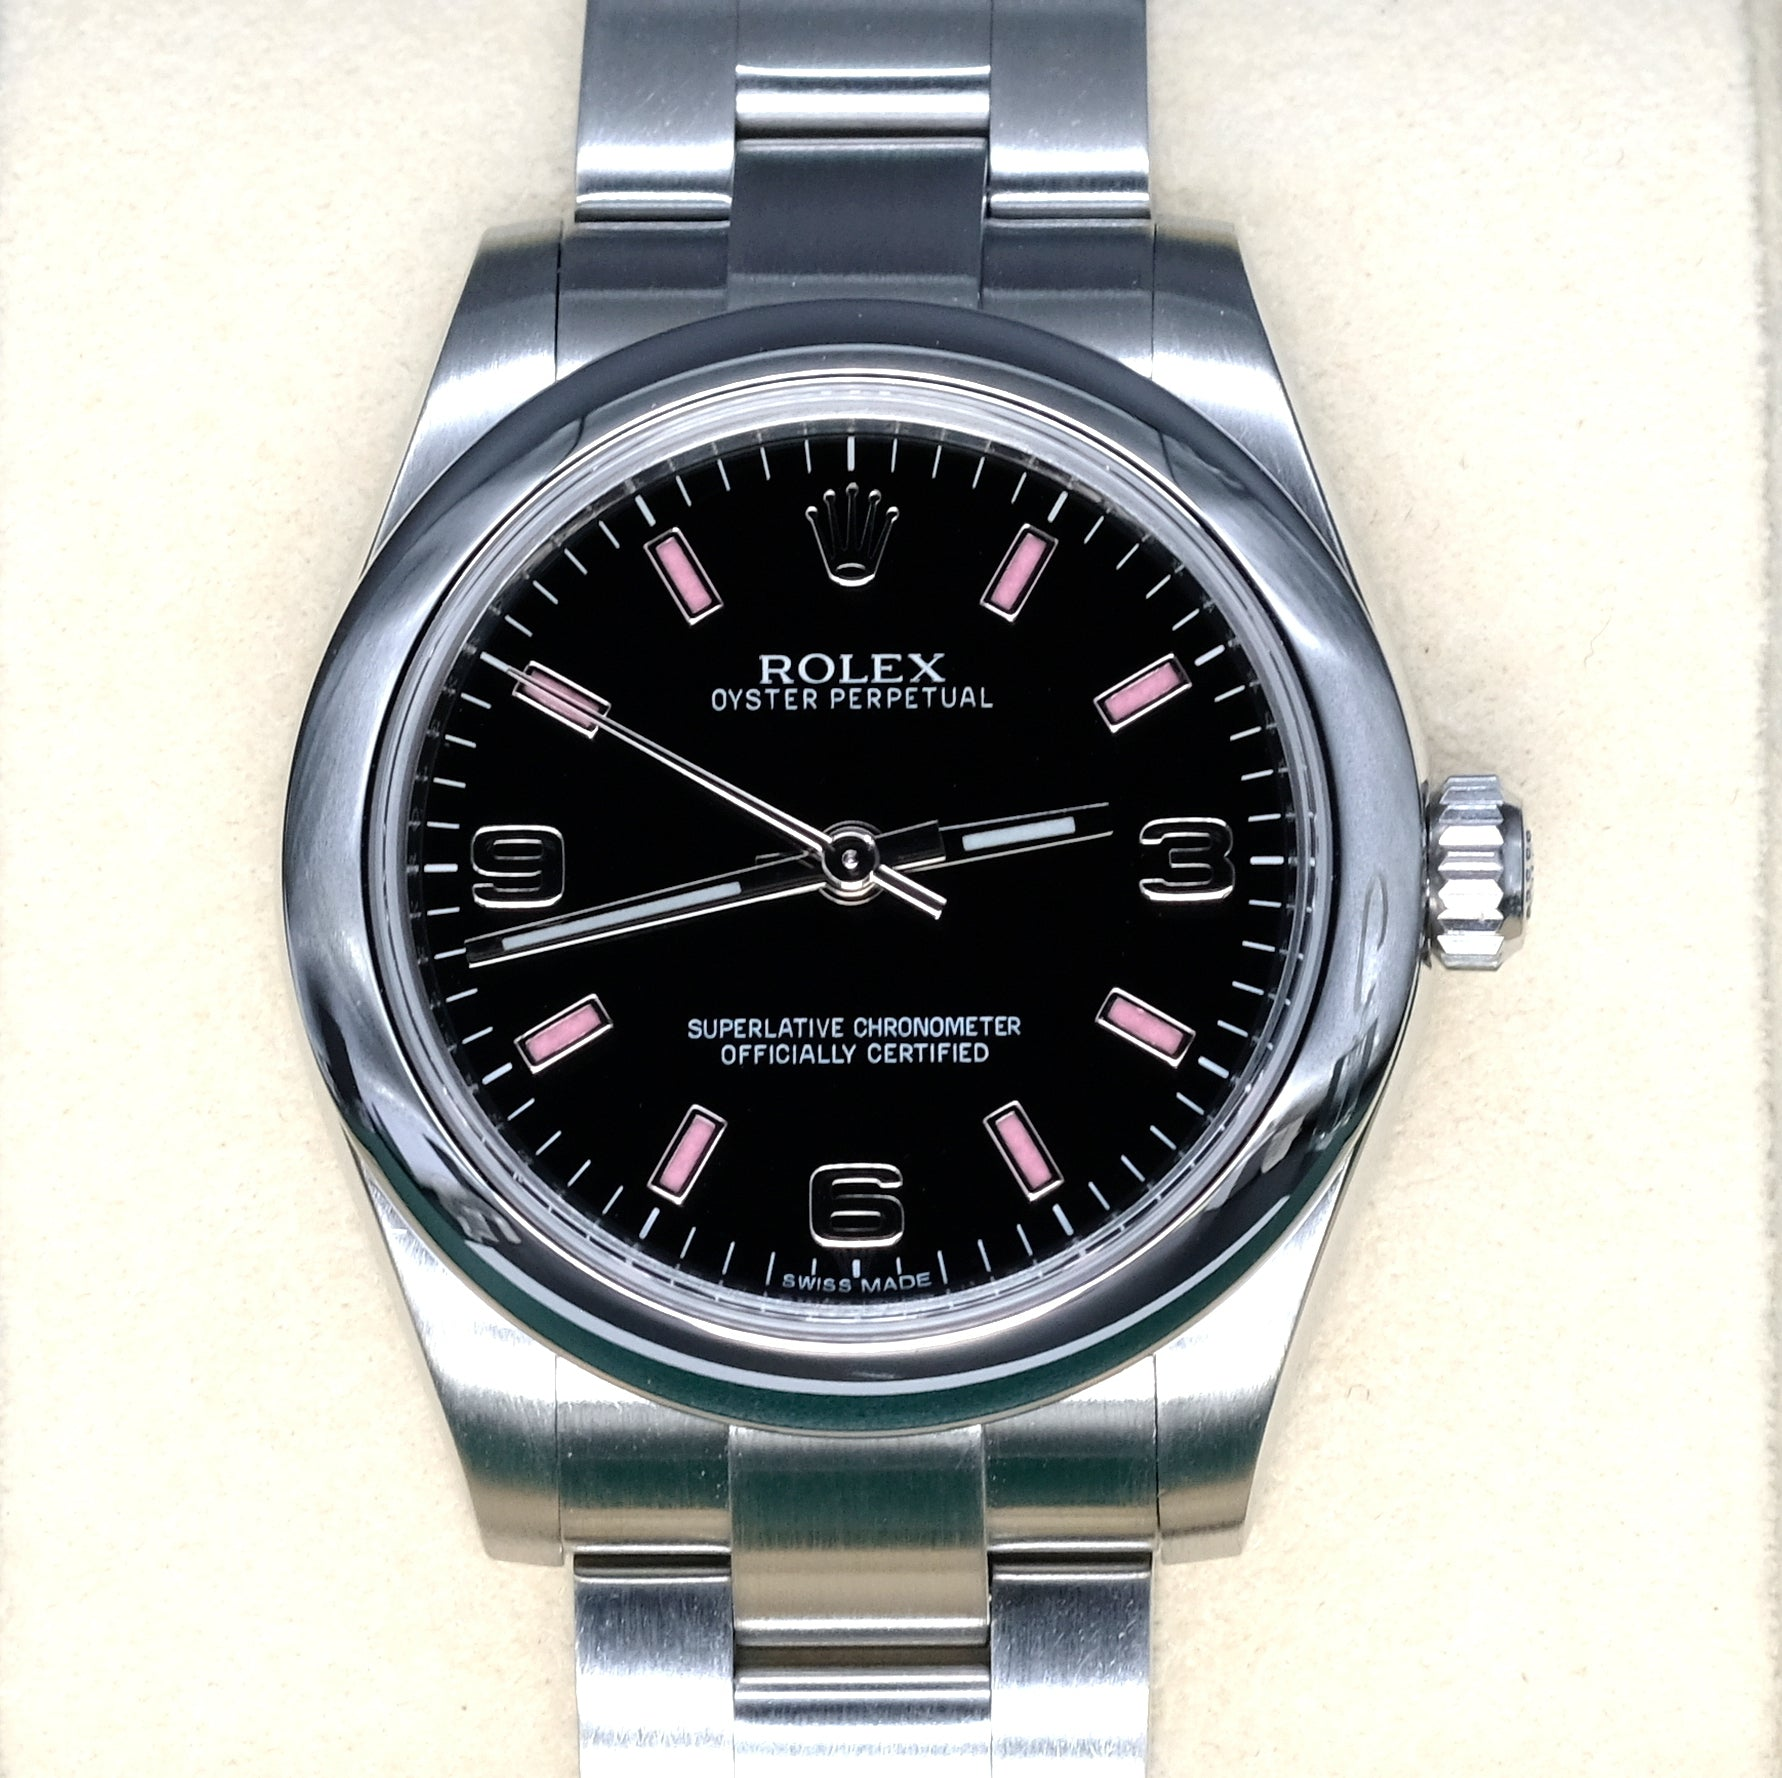 [Pre-Owned Watch] Rolex Oyster Perpetual 31mm 177200 Black Dial Pink Arabic (Out of Production)